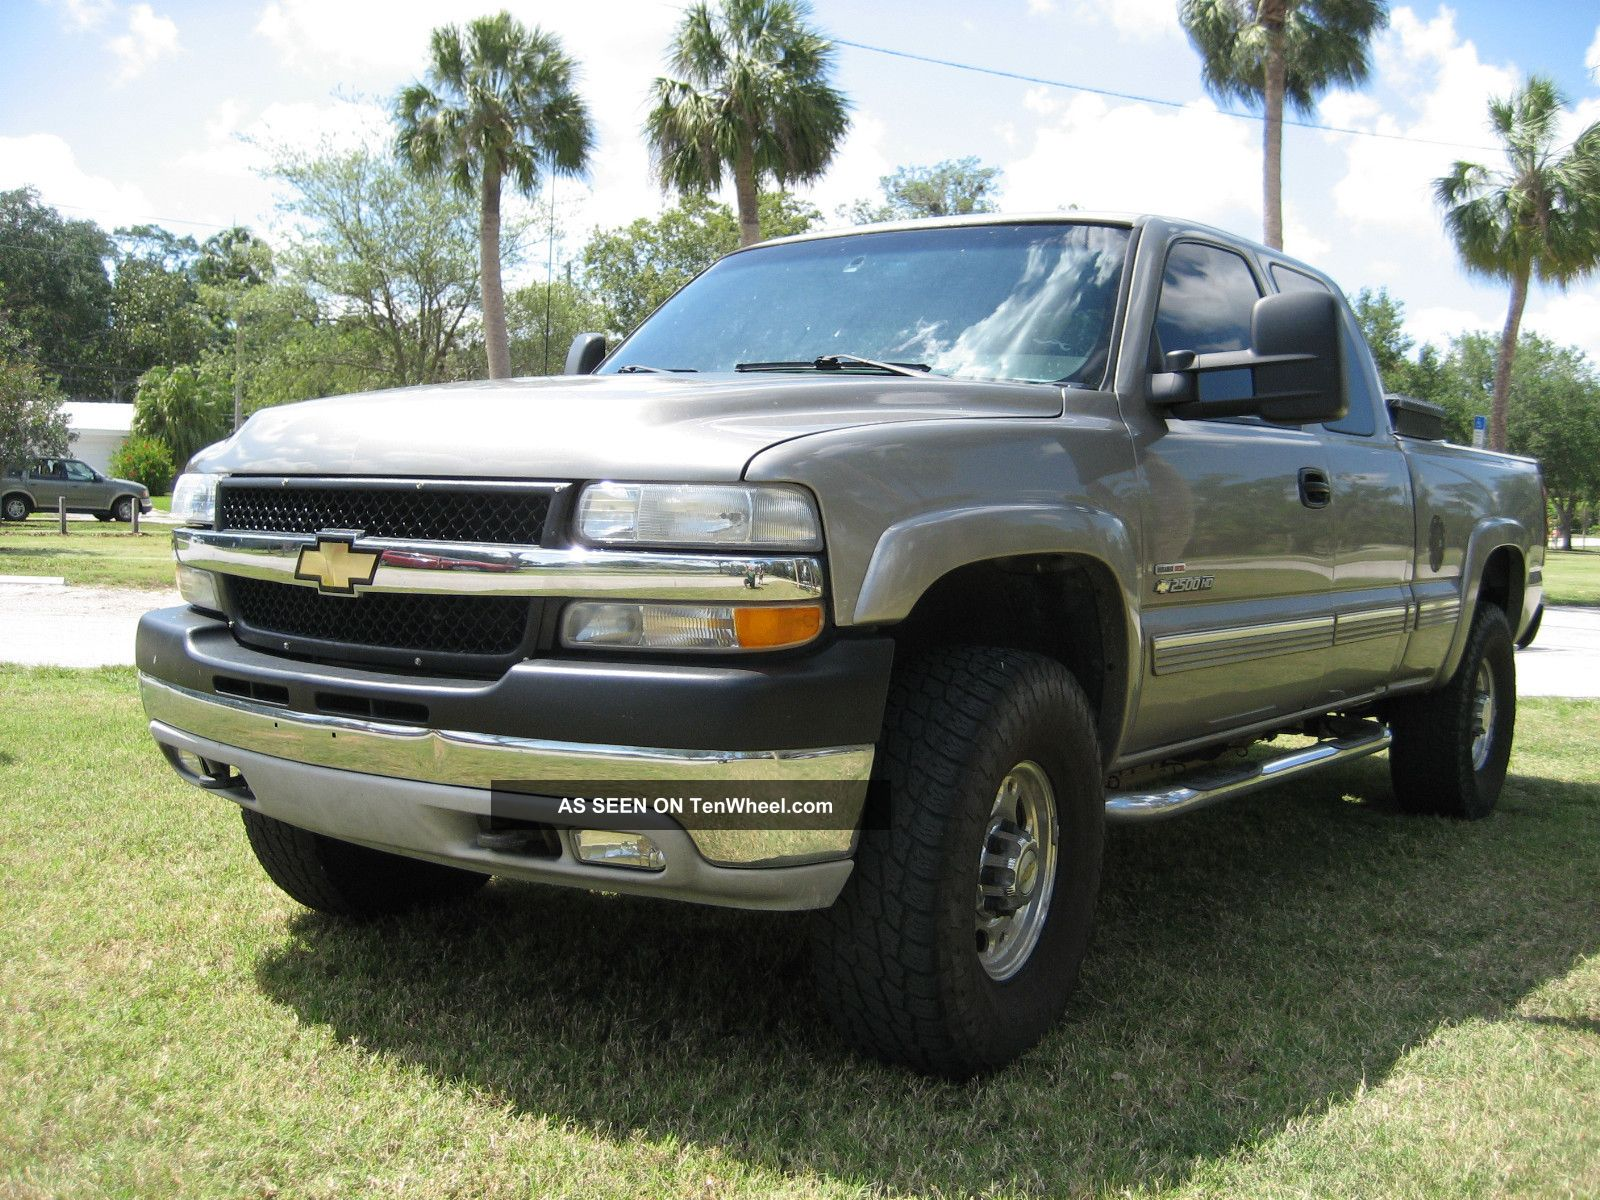 2002 Silverado Diesel Duramax Extra Cab Lifted On 35 S